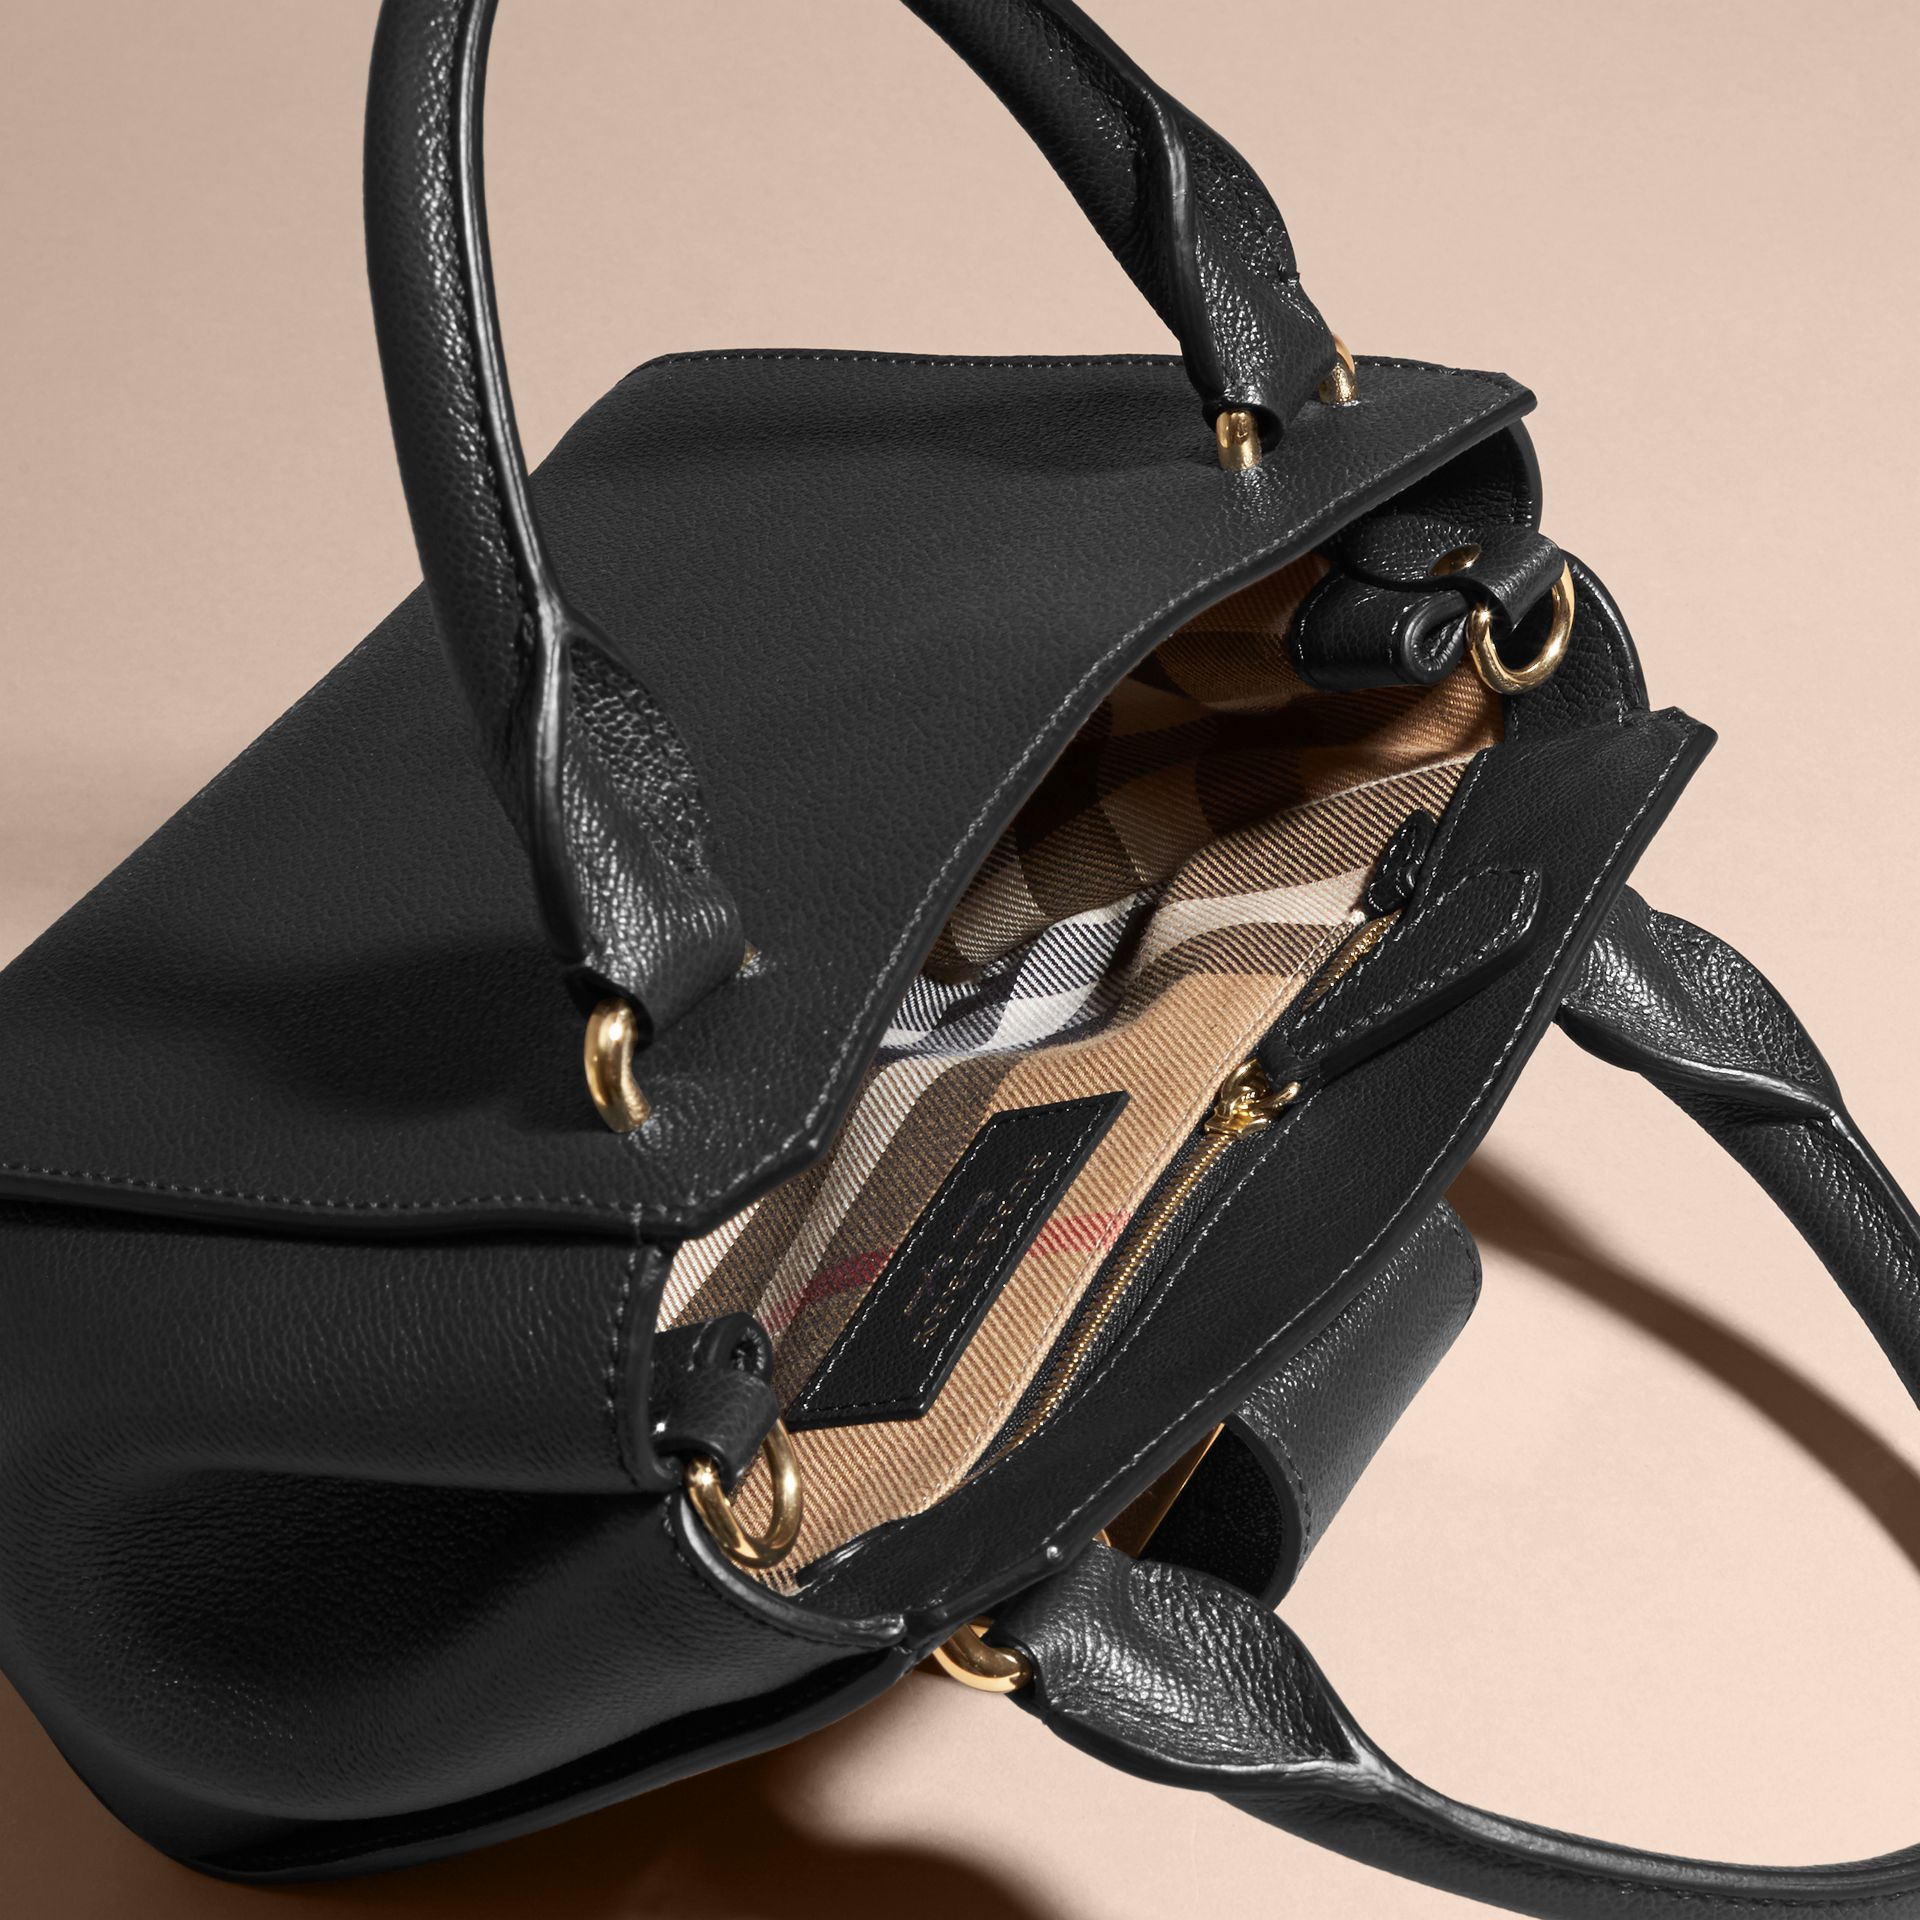 Black The Small Buckle Tote in Grainy Leather Black - gallery image 6